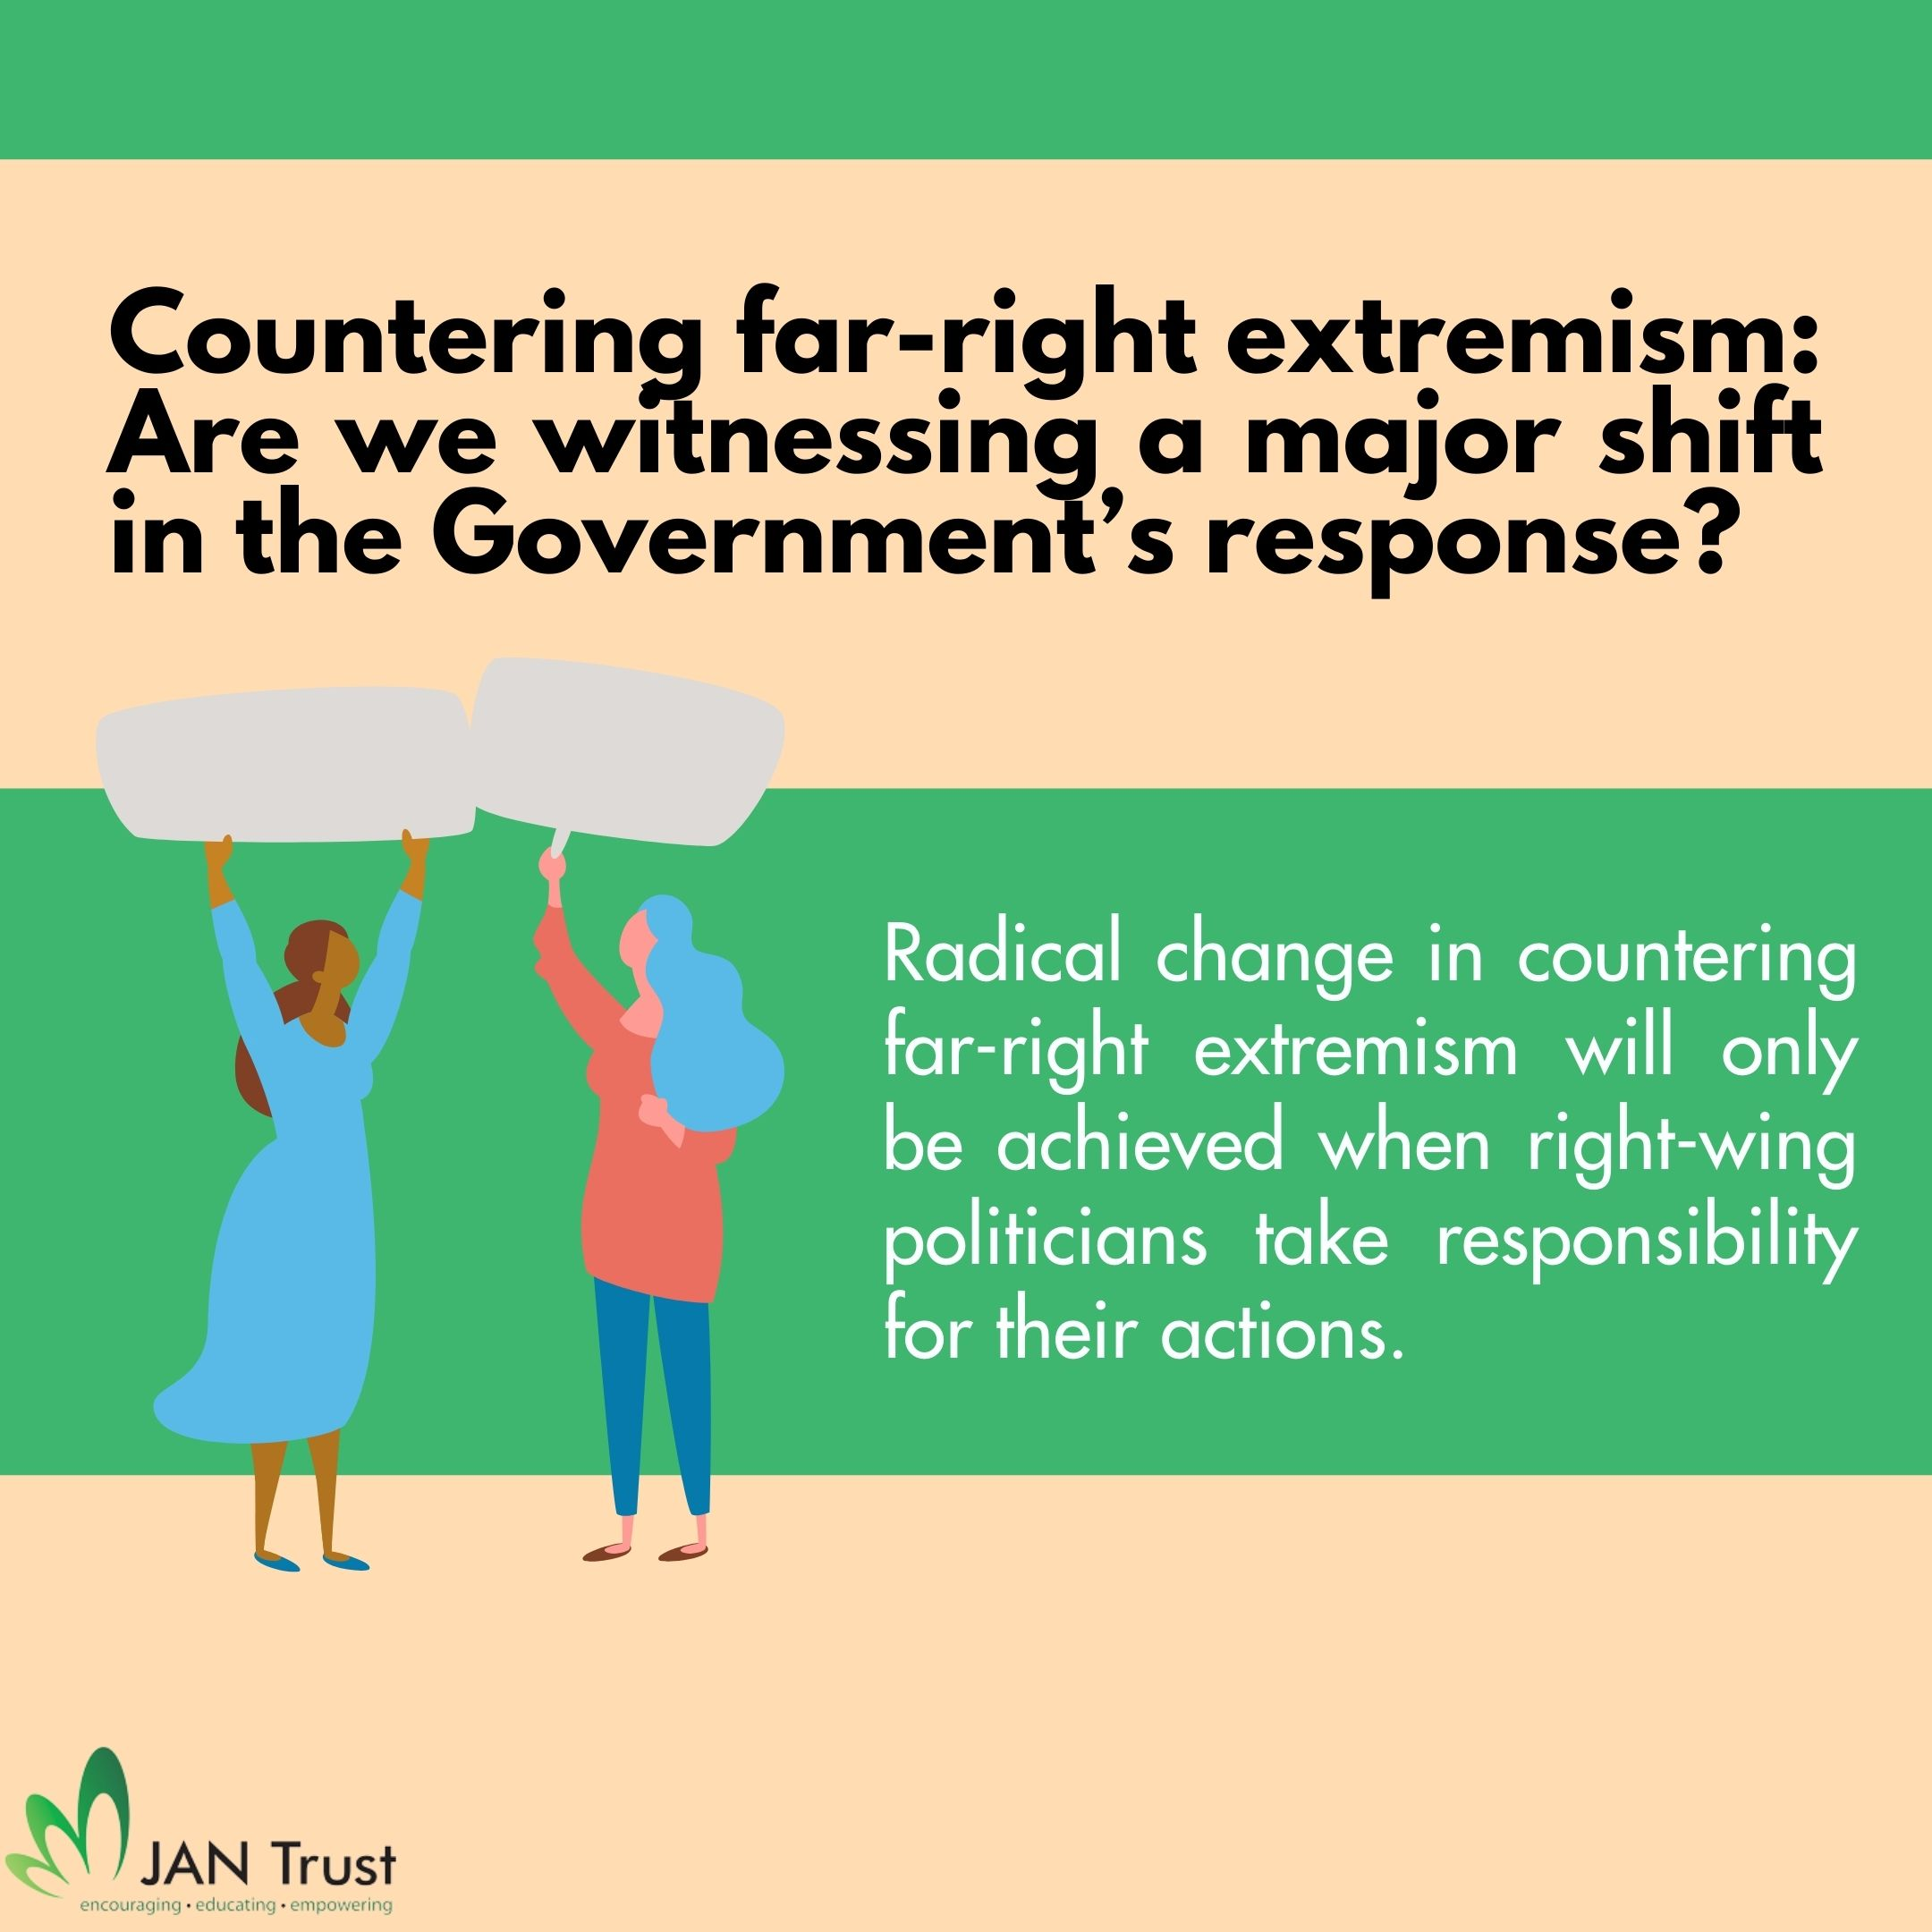 Countering far-right extremism: Are we witnessing a major shift in the Government's response?